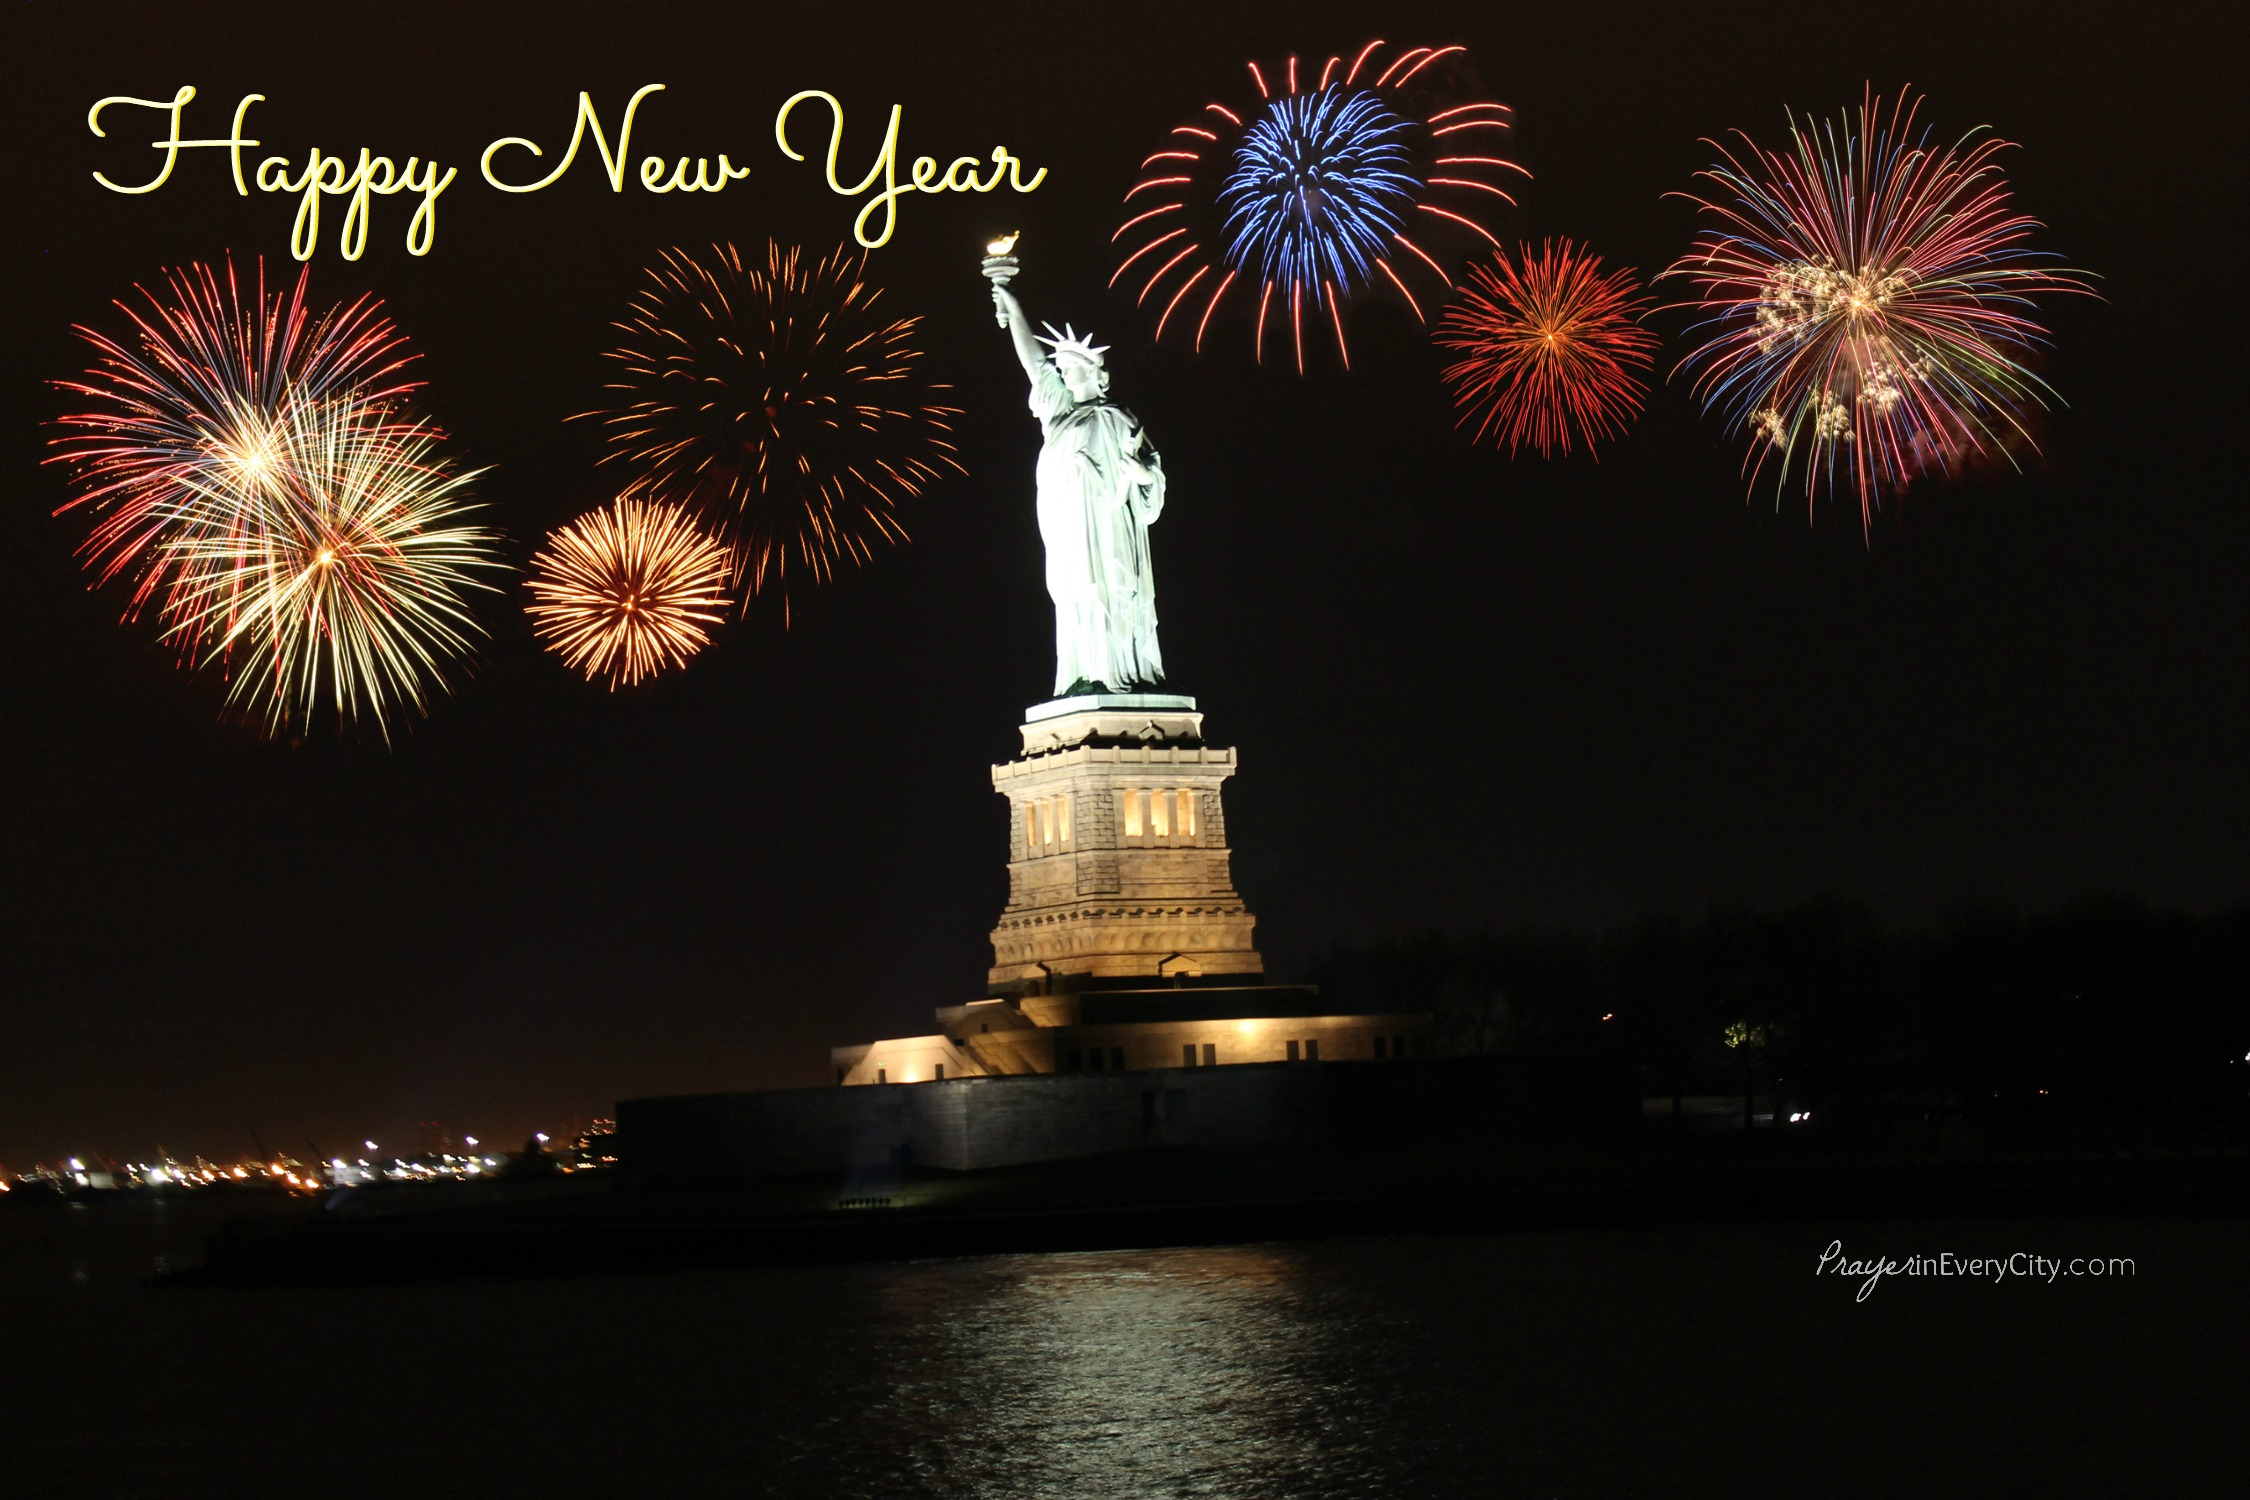 Happy New Year     Prayer In Every City happy new year america